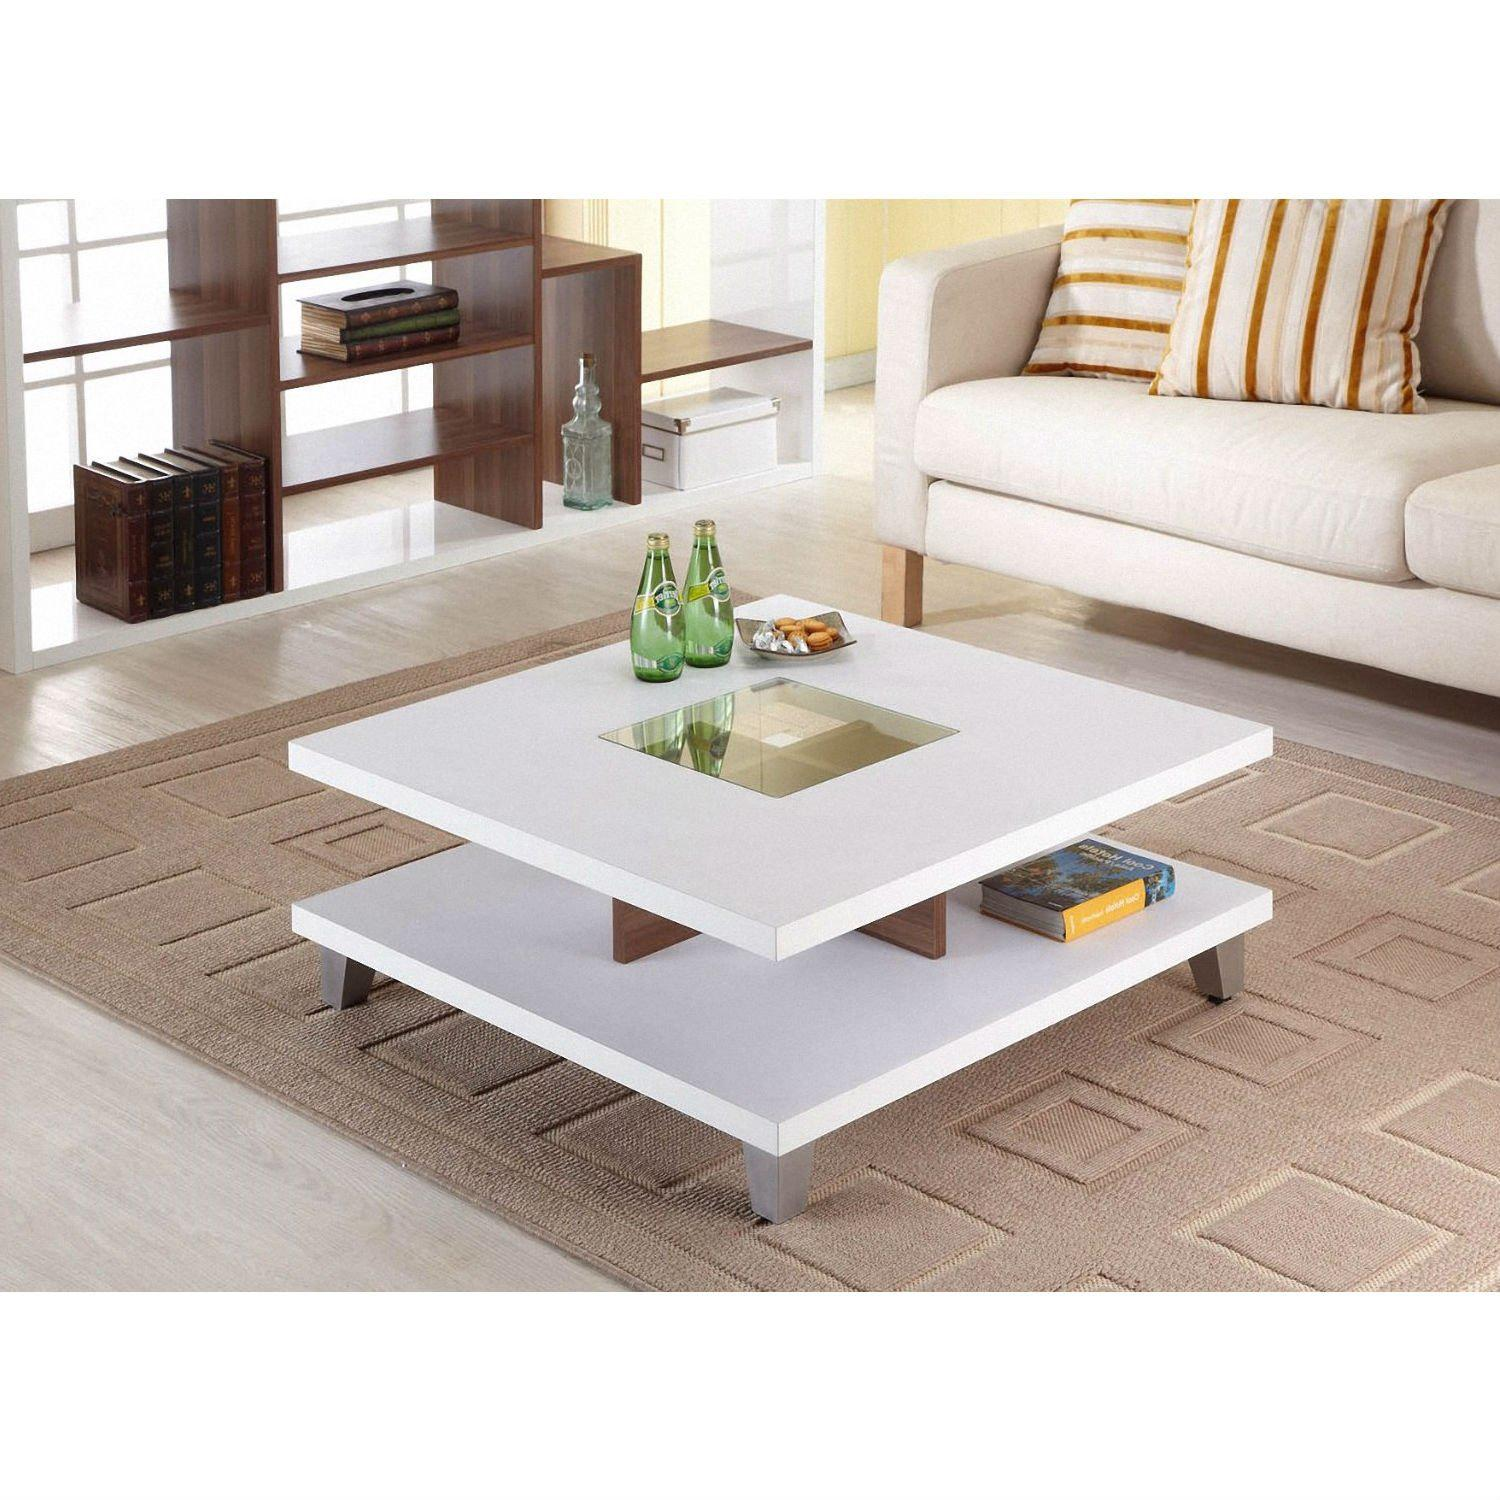 Modern Square Coffee Table in White Wood from Hearts Attic